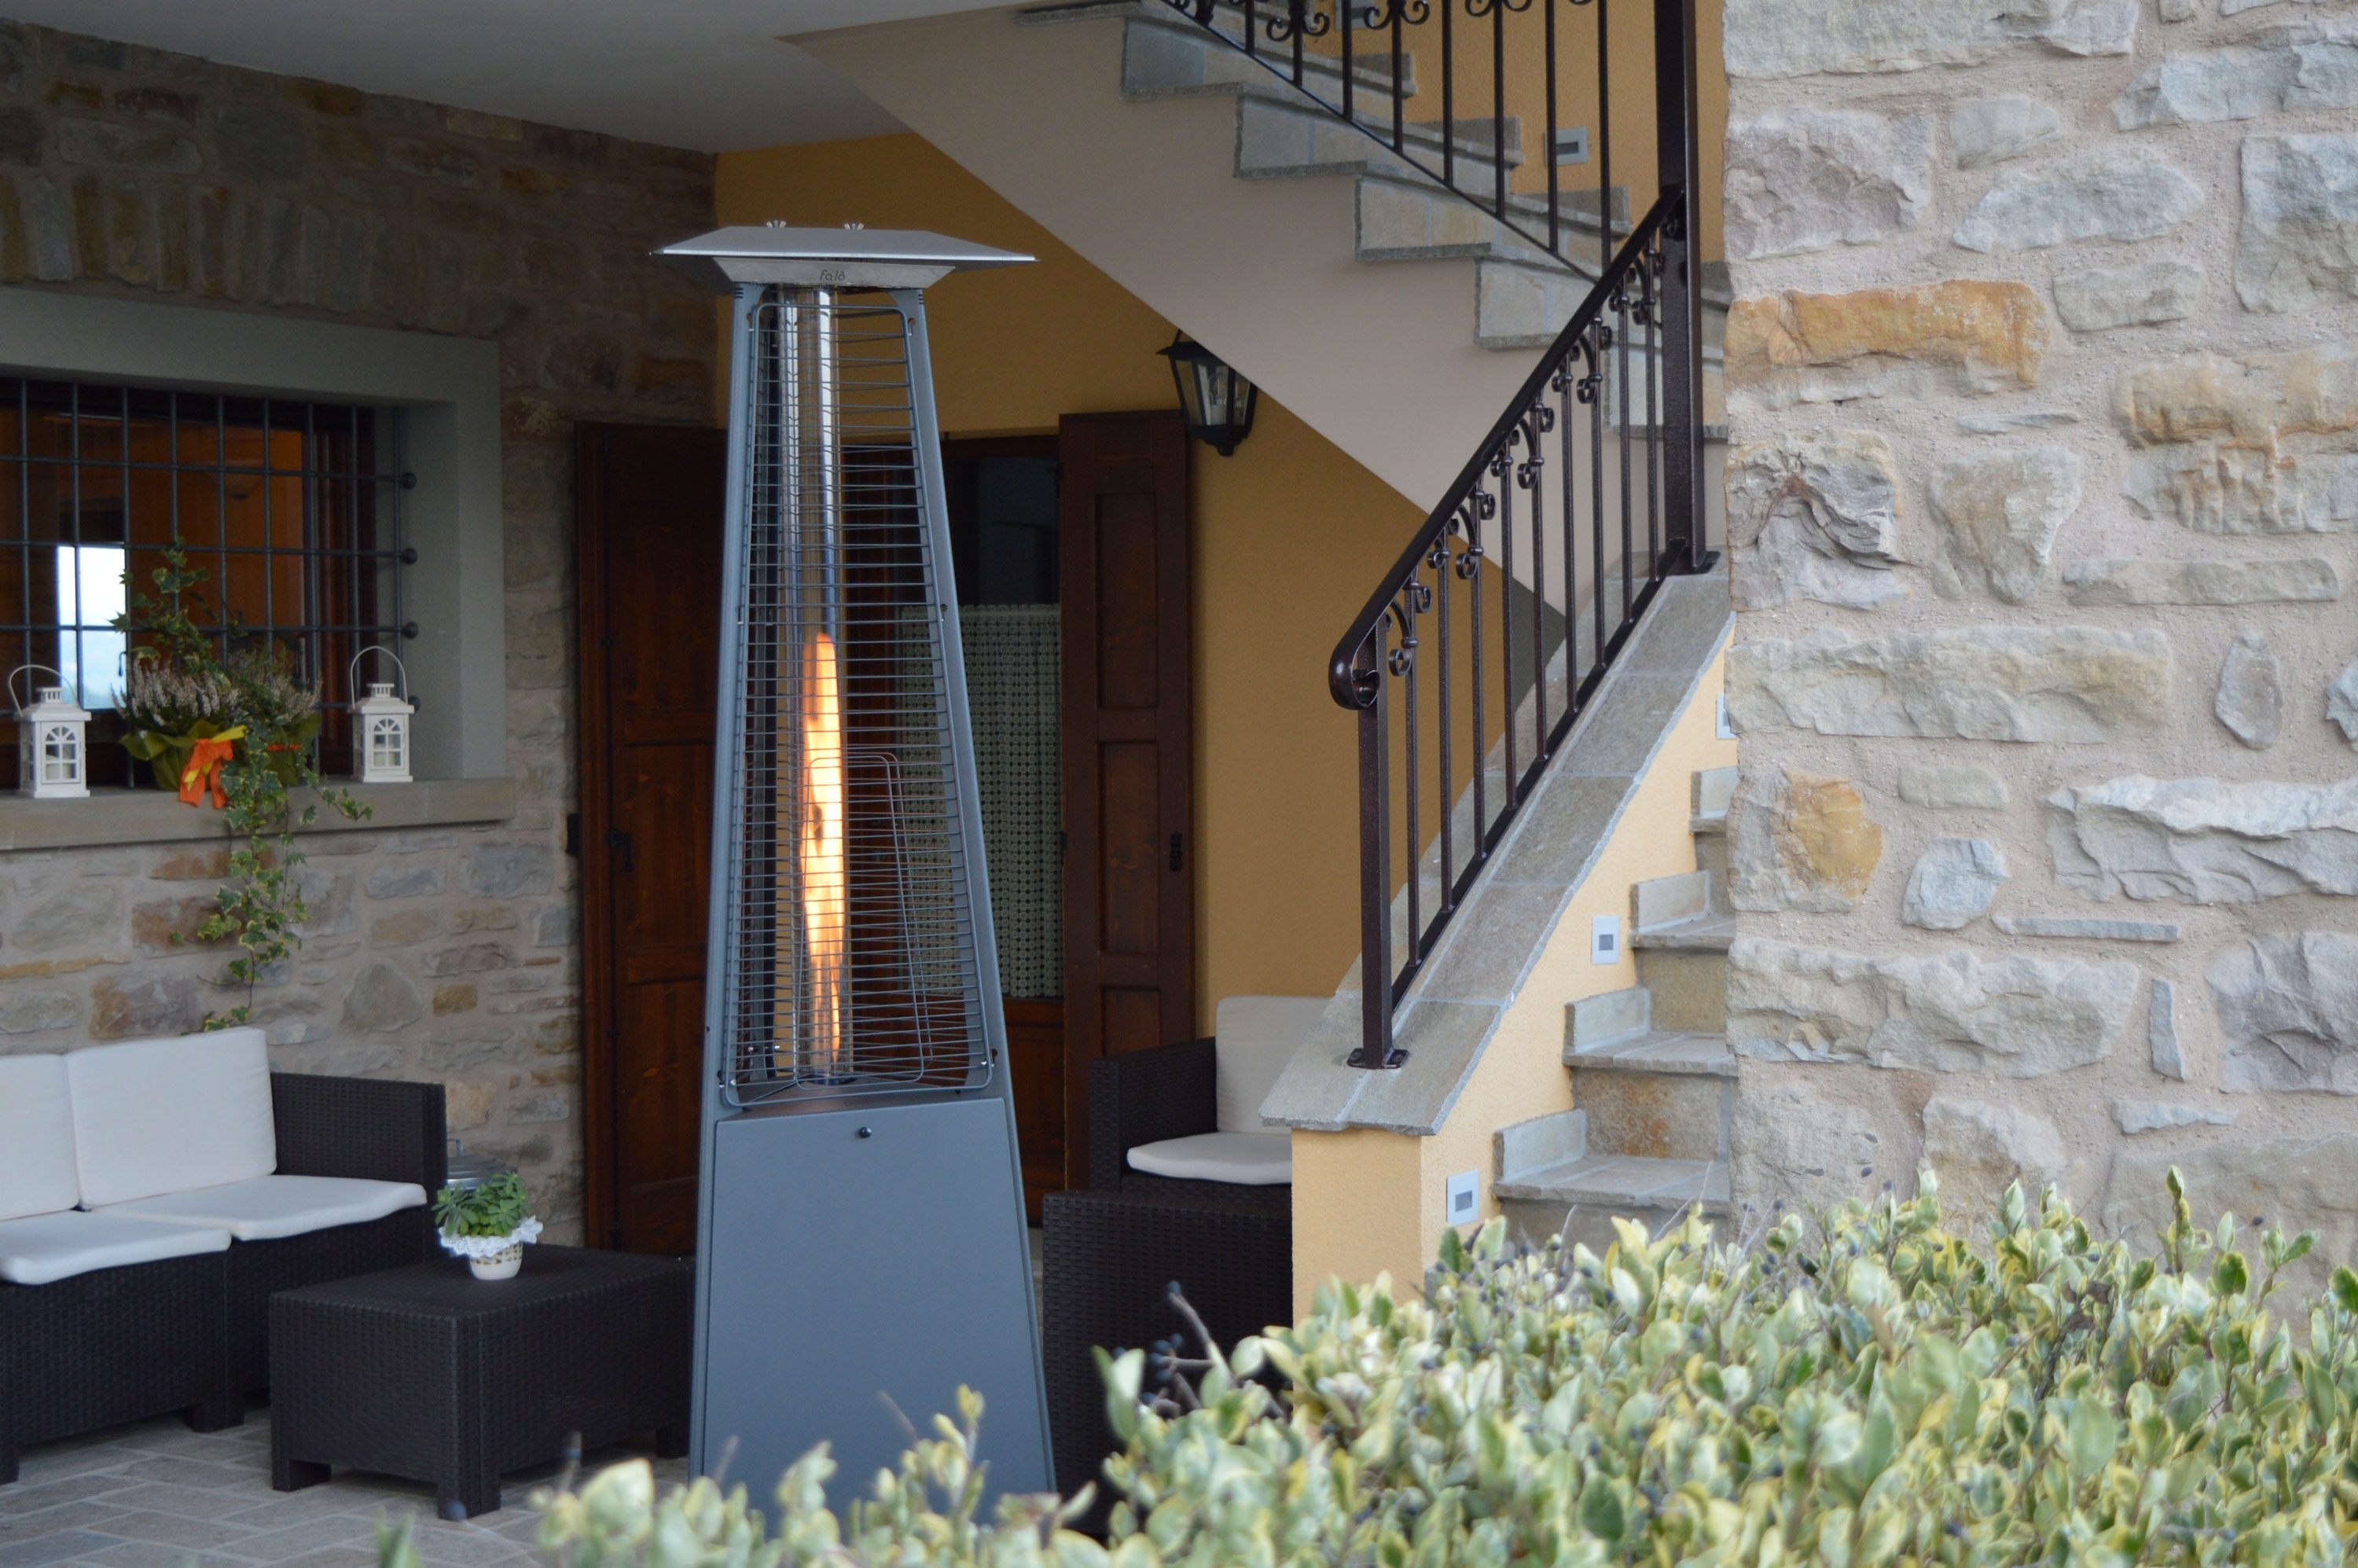 falo evo pyramid gas outdoor heater by italkero. Black Bedroom Furniture Sets. Home Design Ideas